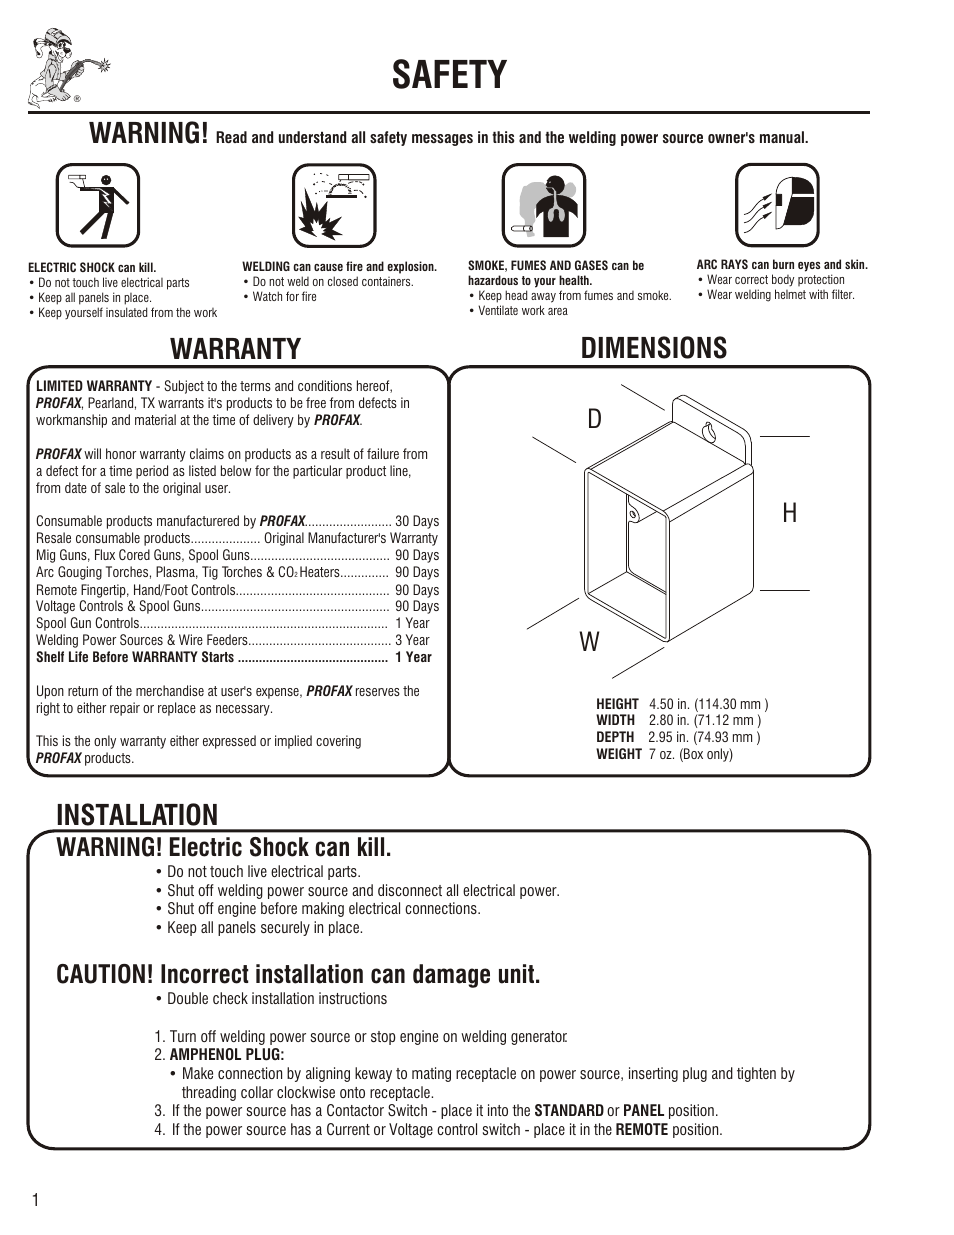 Safety Maintenance Warning Profax Mhc 14 User Manual Page 2 4 Miller Maxstar 200 Wiring Diagram